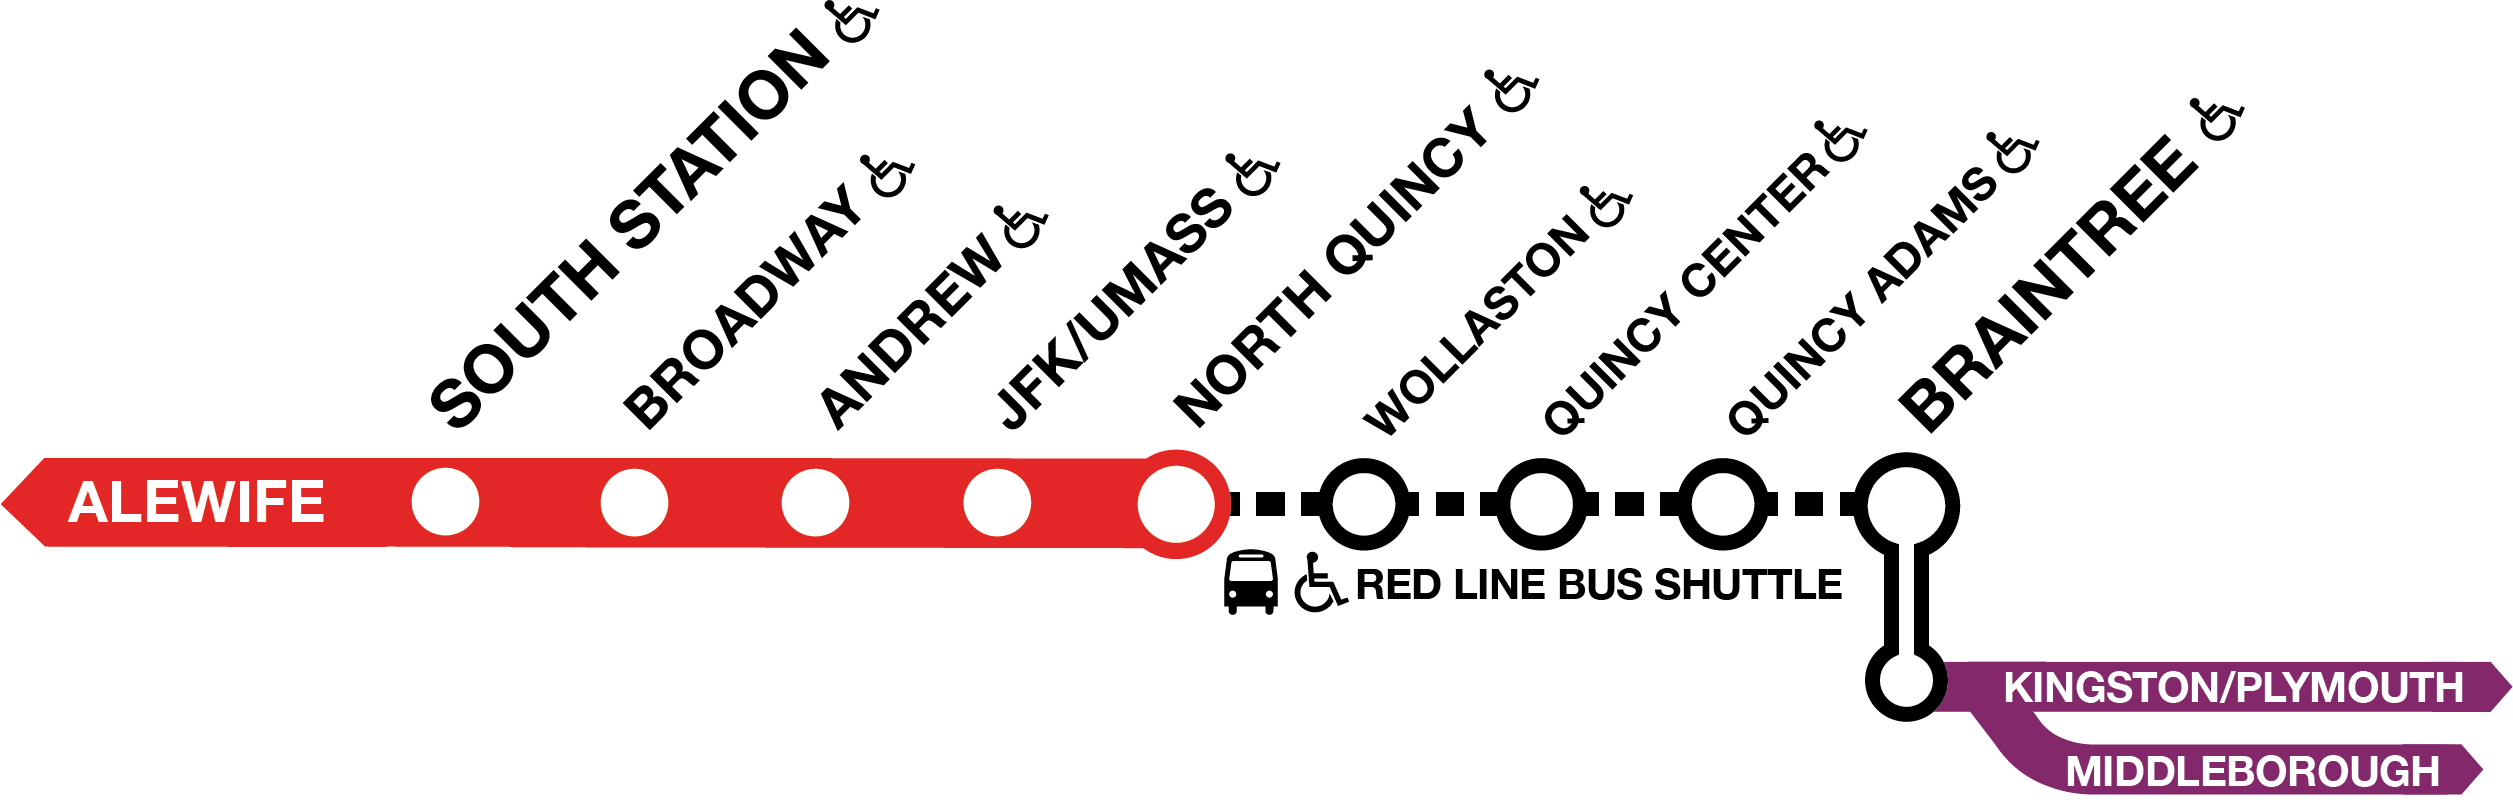 Kingston/Plymouth and Middleborough/Lakeville Lines terminate at Braintree and connect to bus shuttles on the Red Line